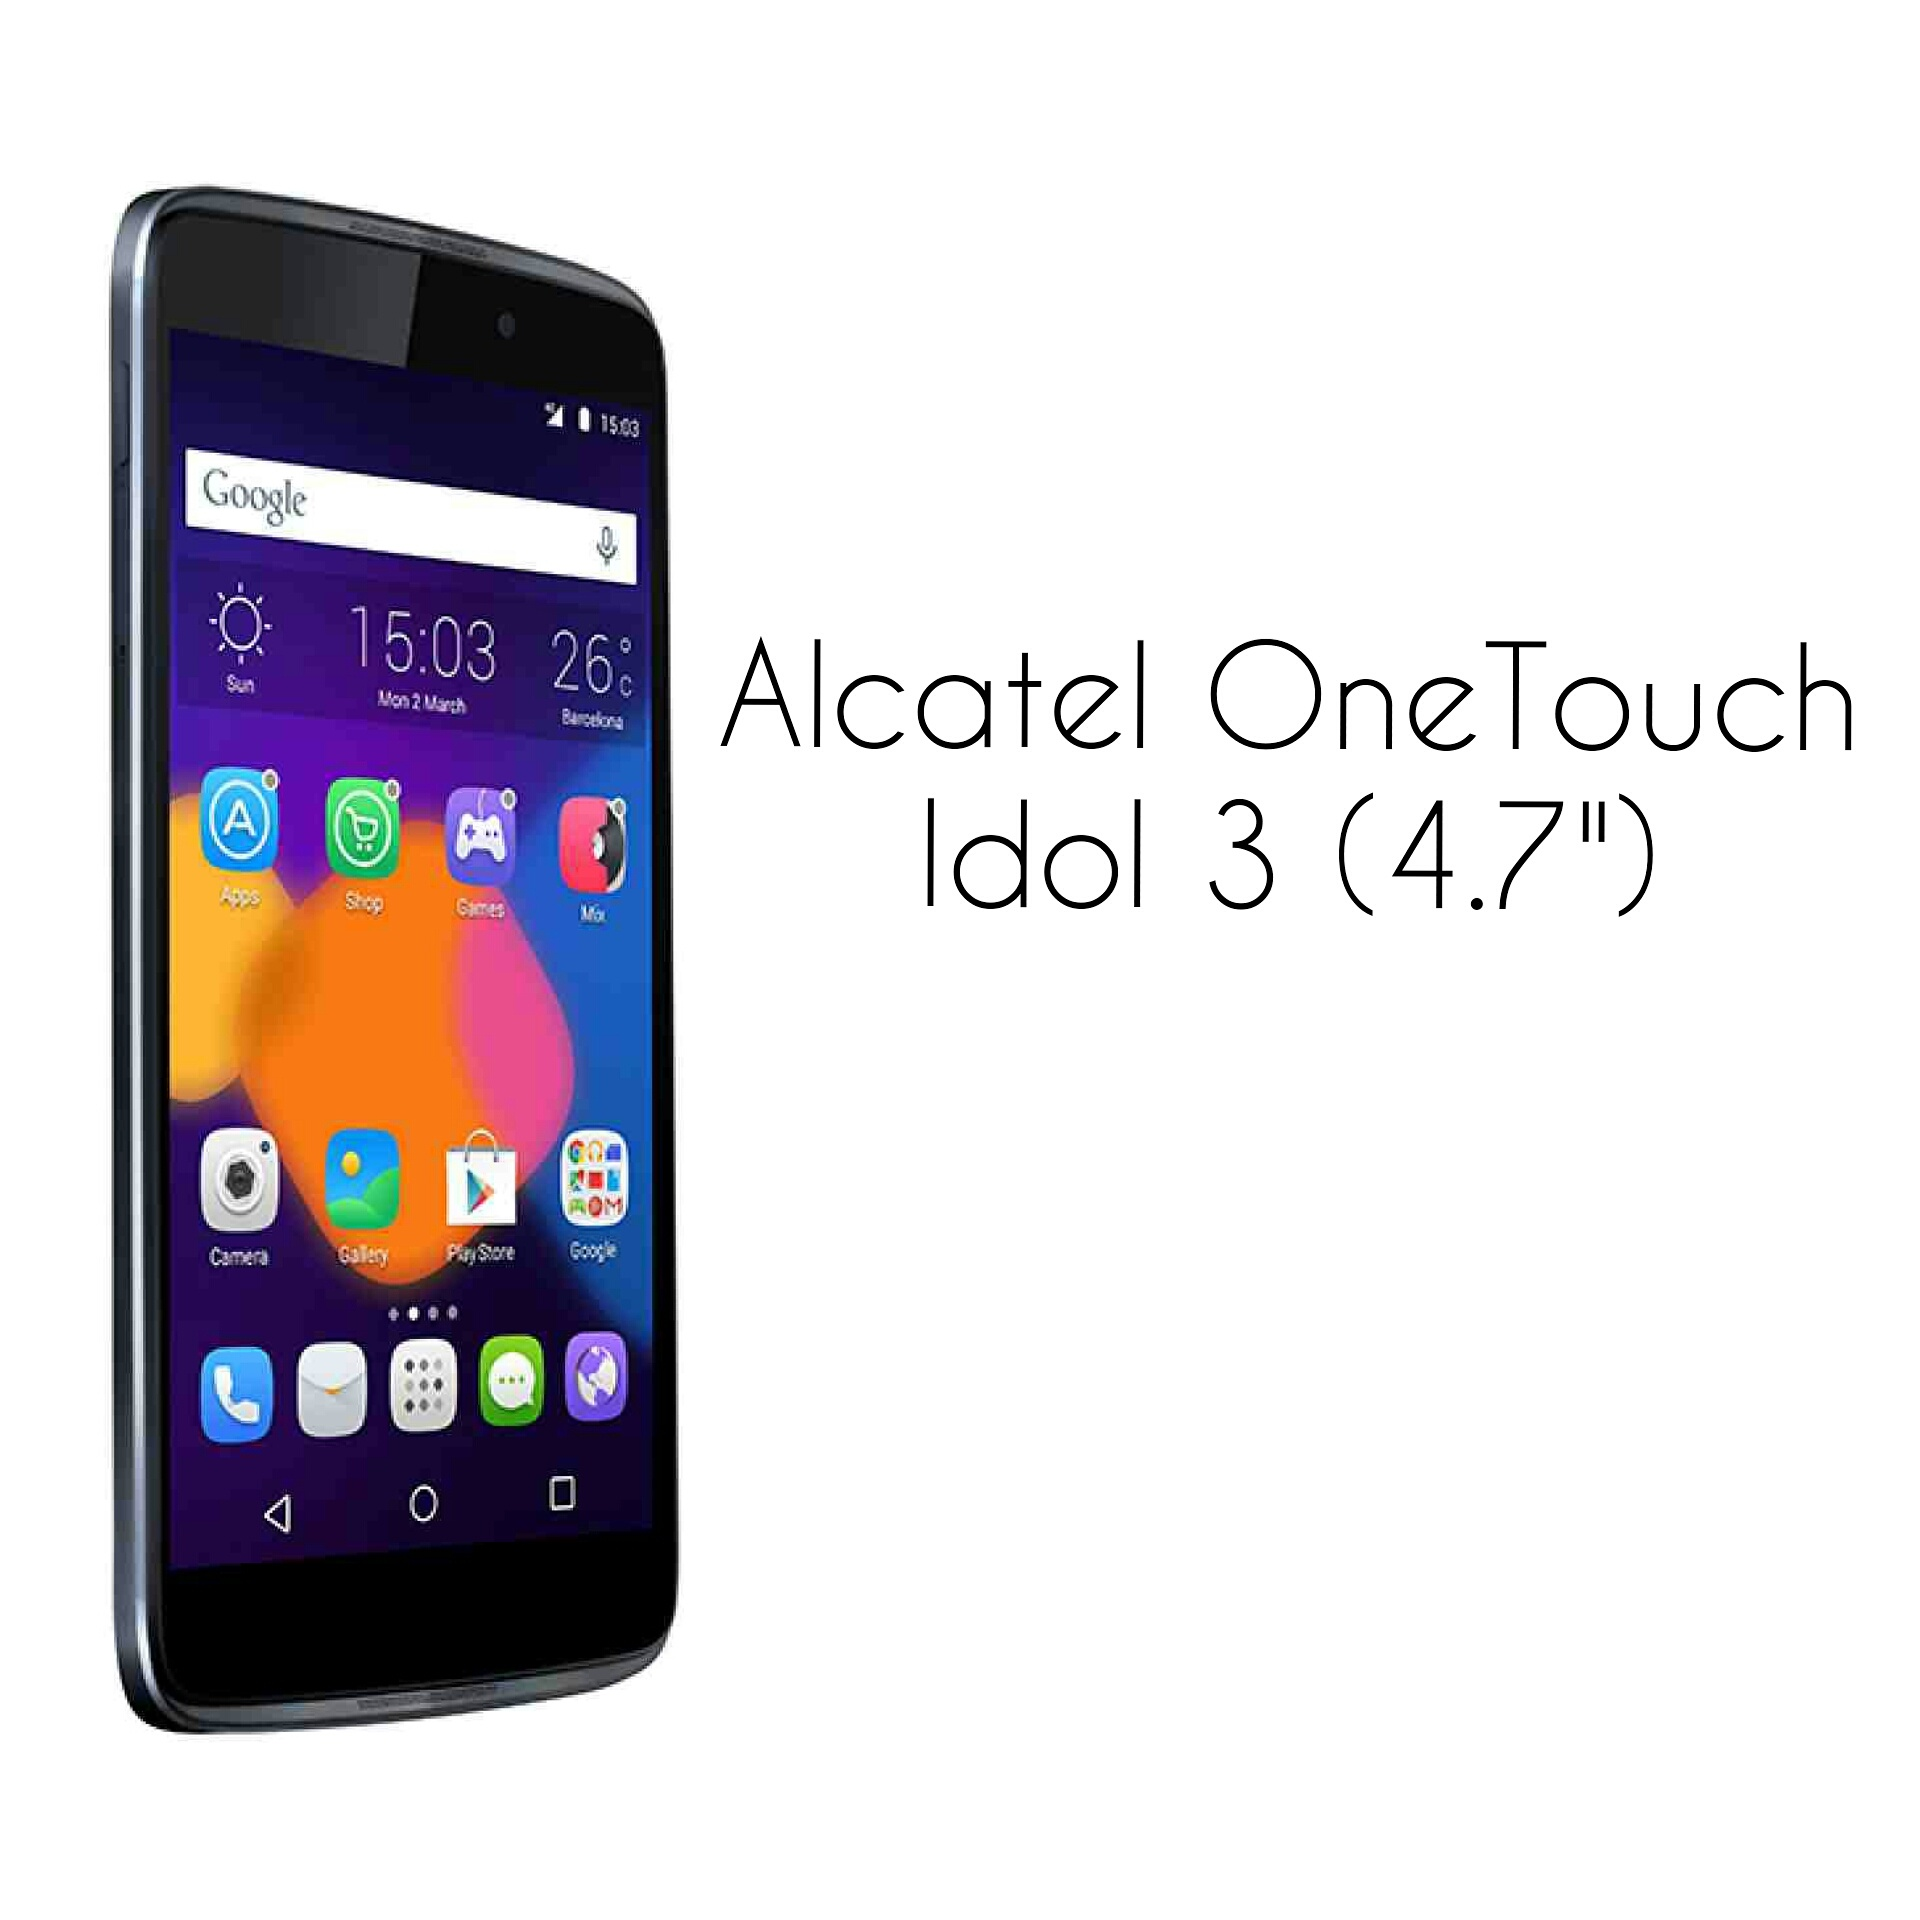 Alcatel One Touch Idol Libre The Alcatel One Touch Idol 3 4 7 Specifications And